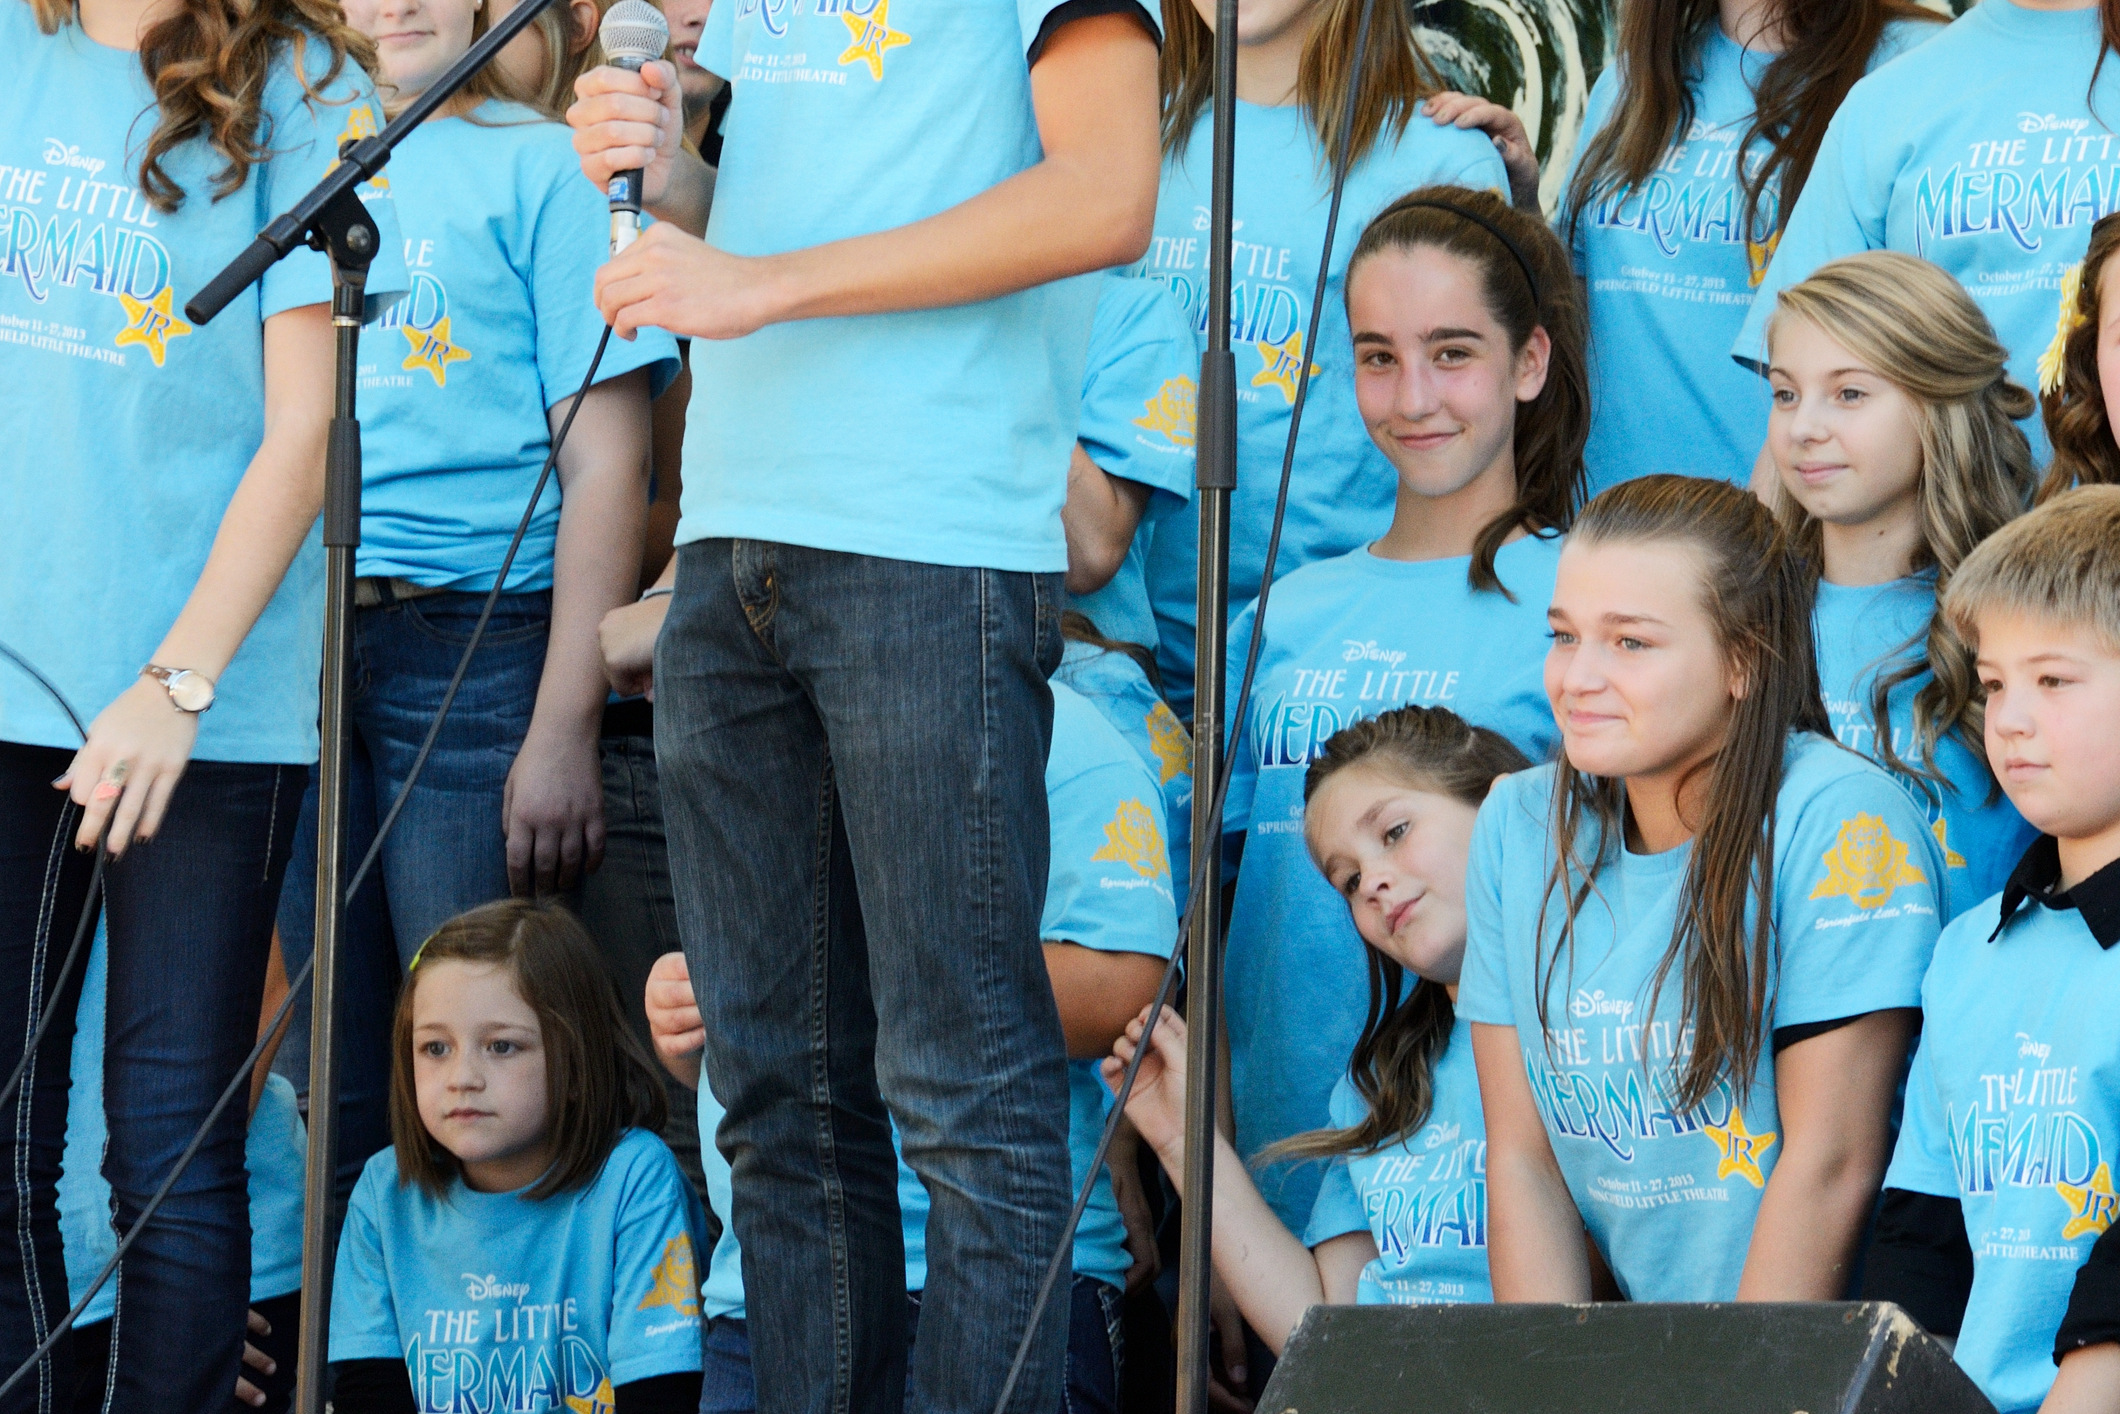 Lanie on stage with The Little Mermaid cast at Cider Days